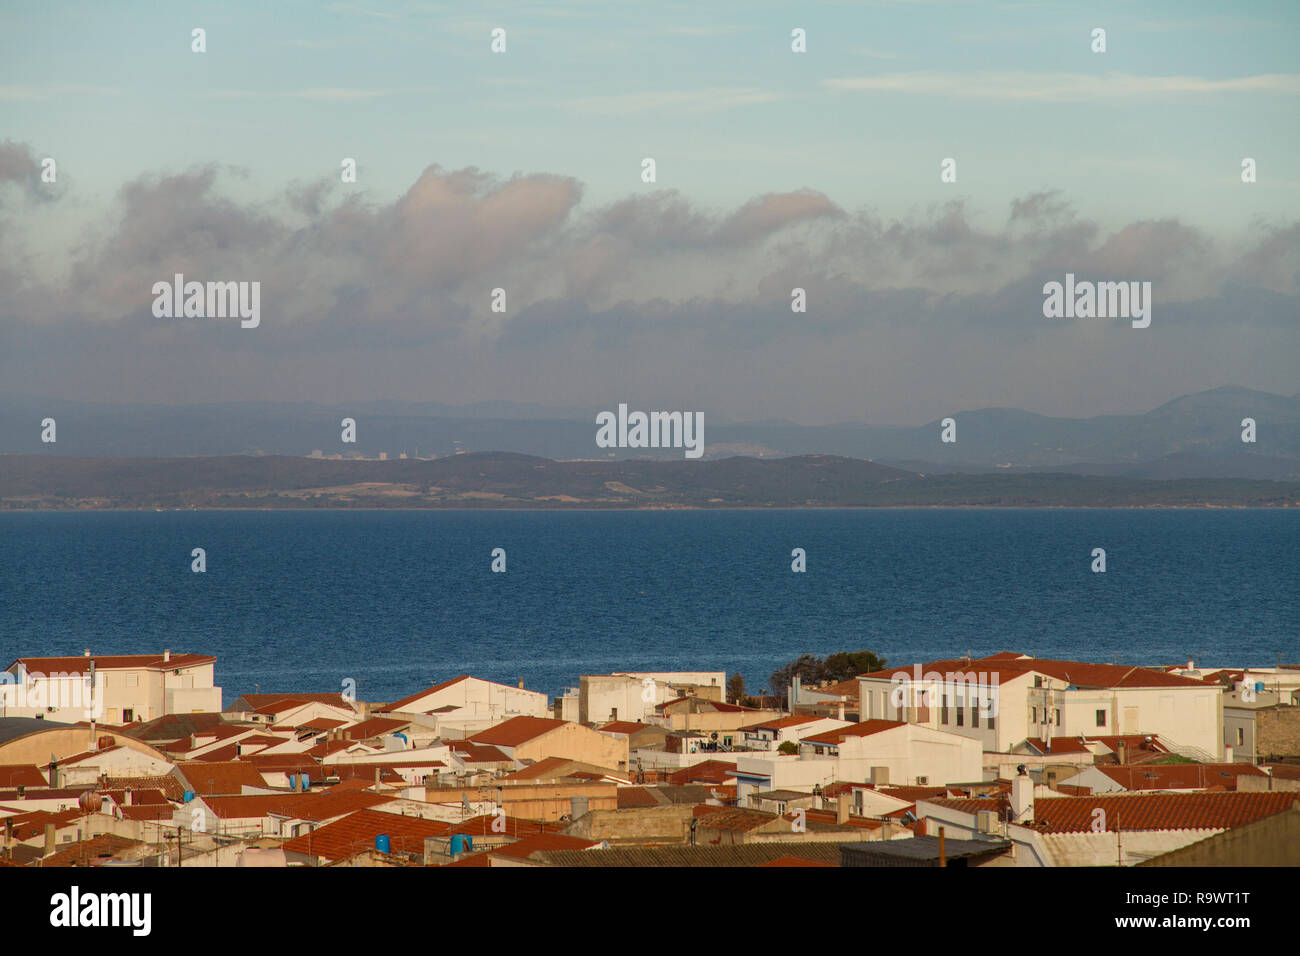 View of the roofs of a country in Sardinia with a varied sky in layers that generates a pleasant visual effect - Stock Image